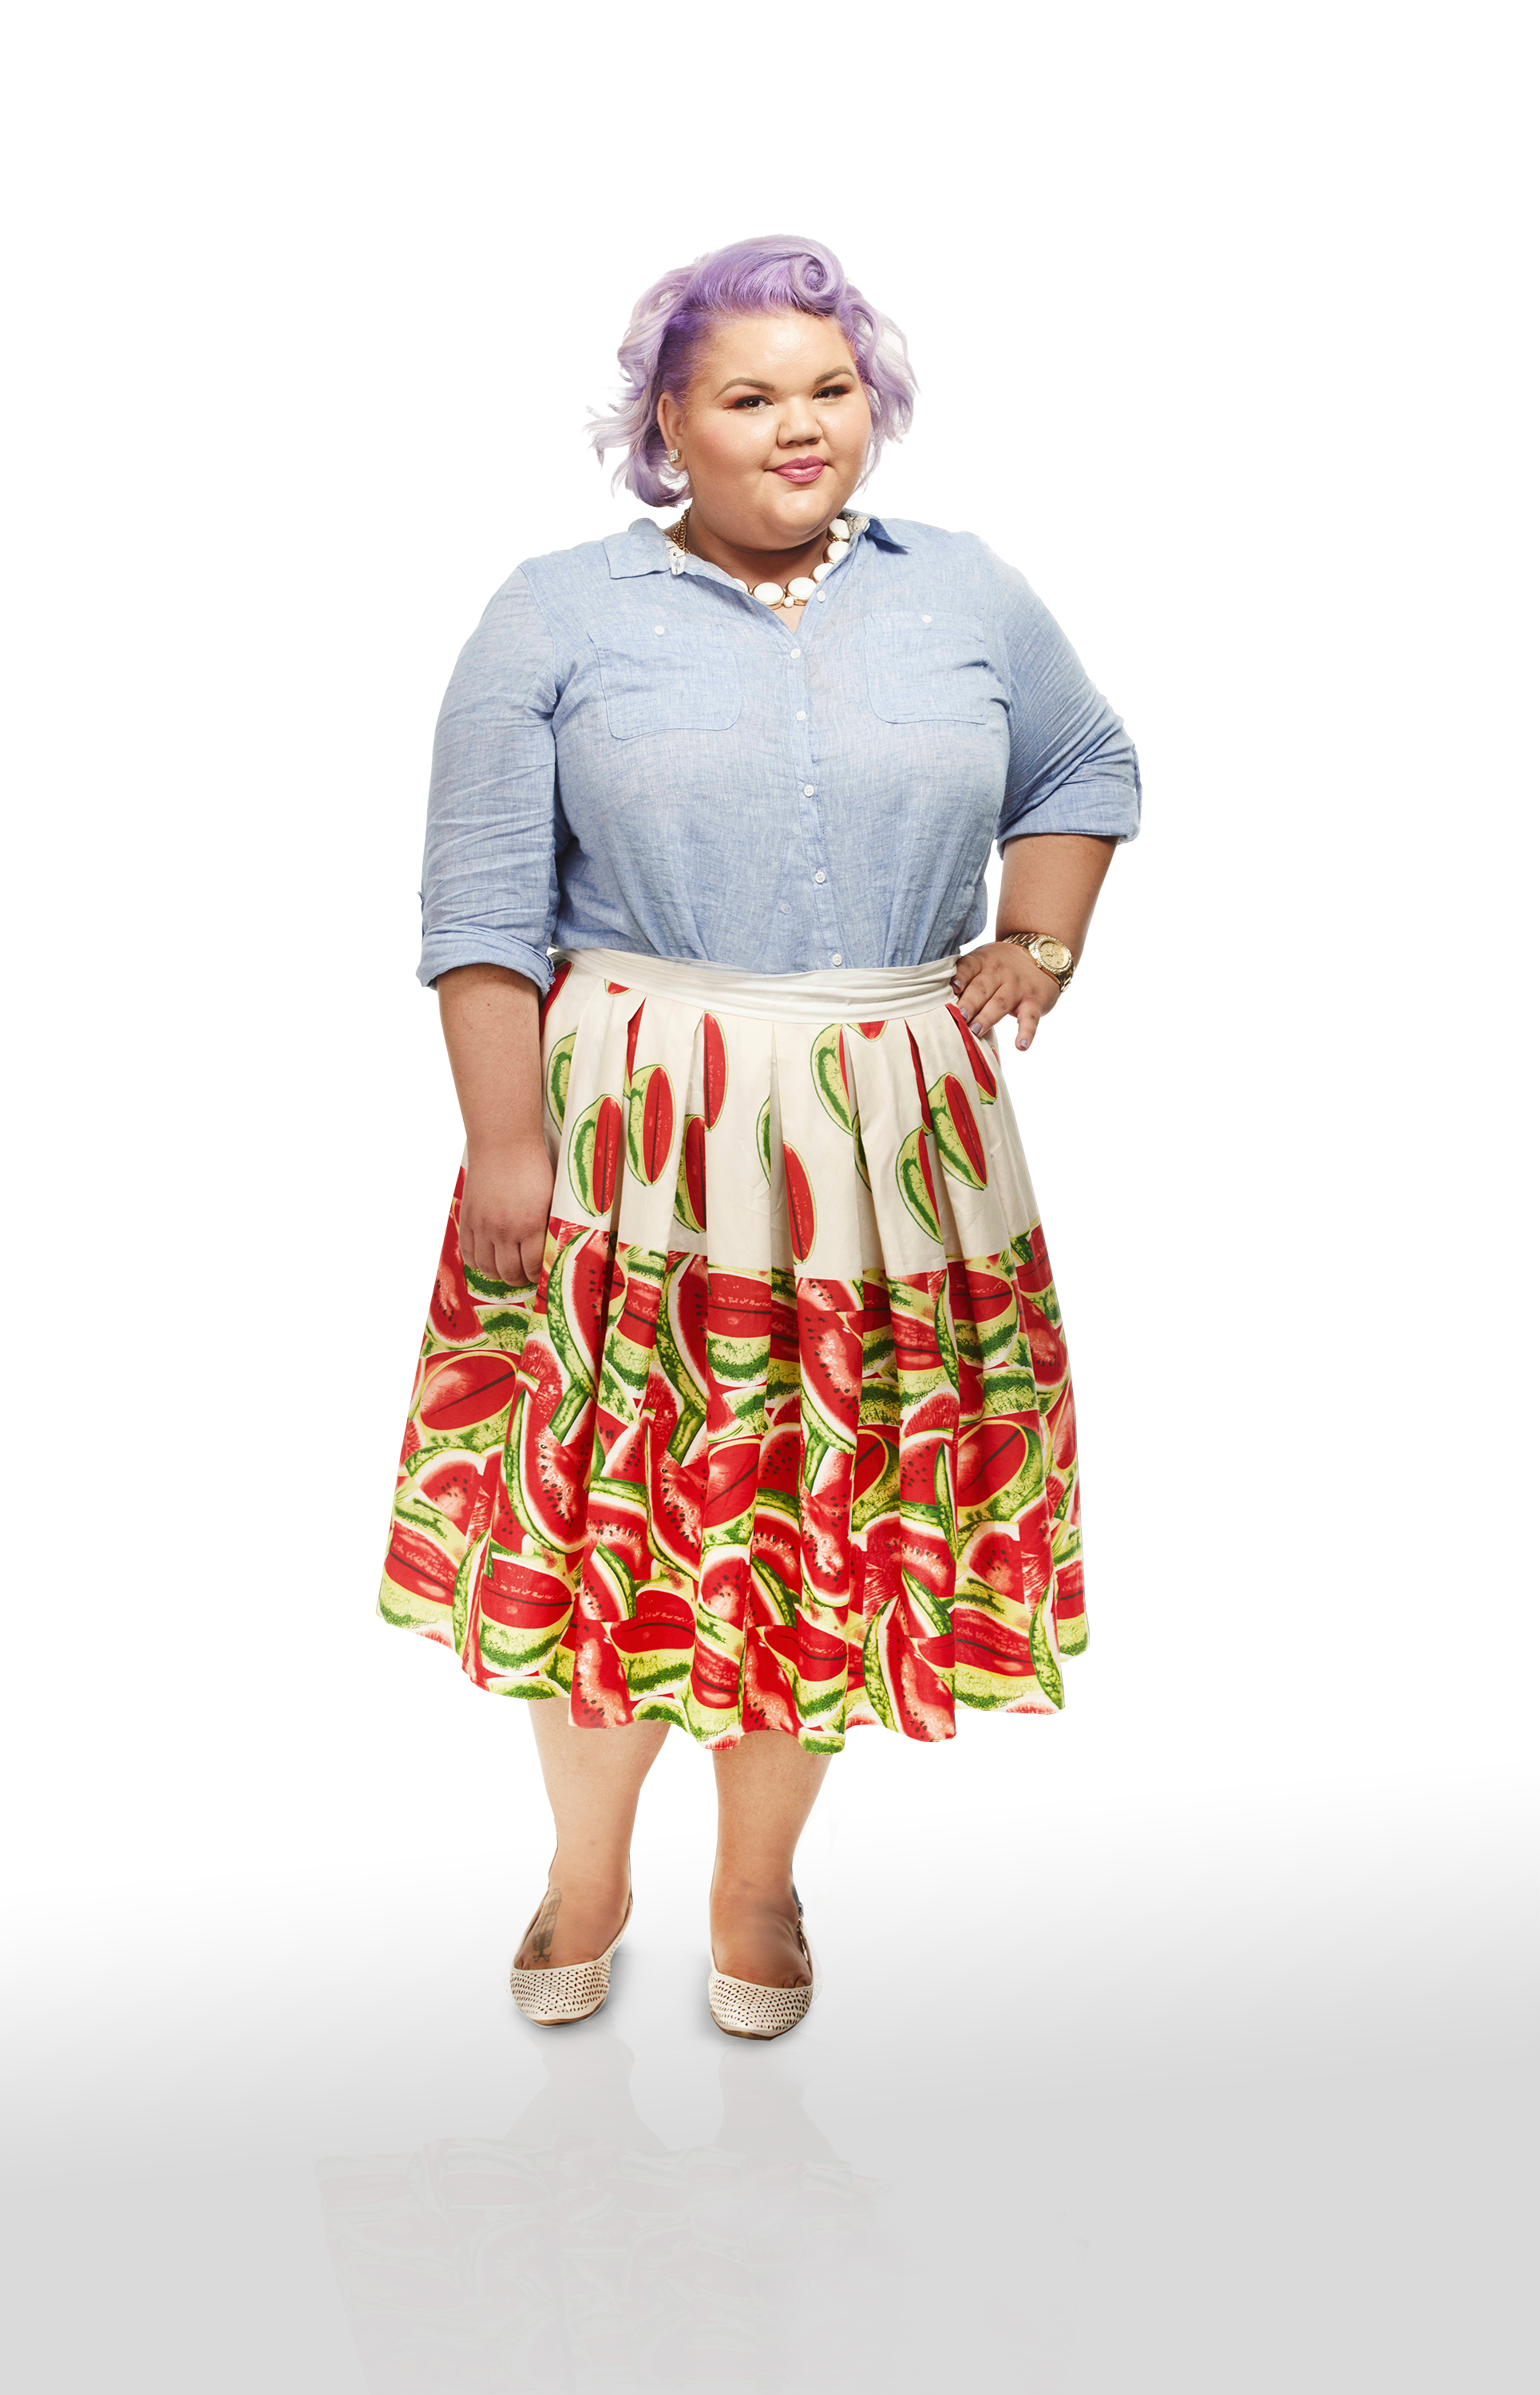 Project Runway's first plus size fashion designer